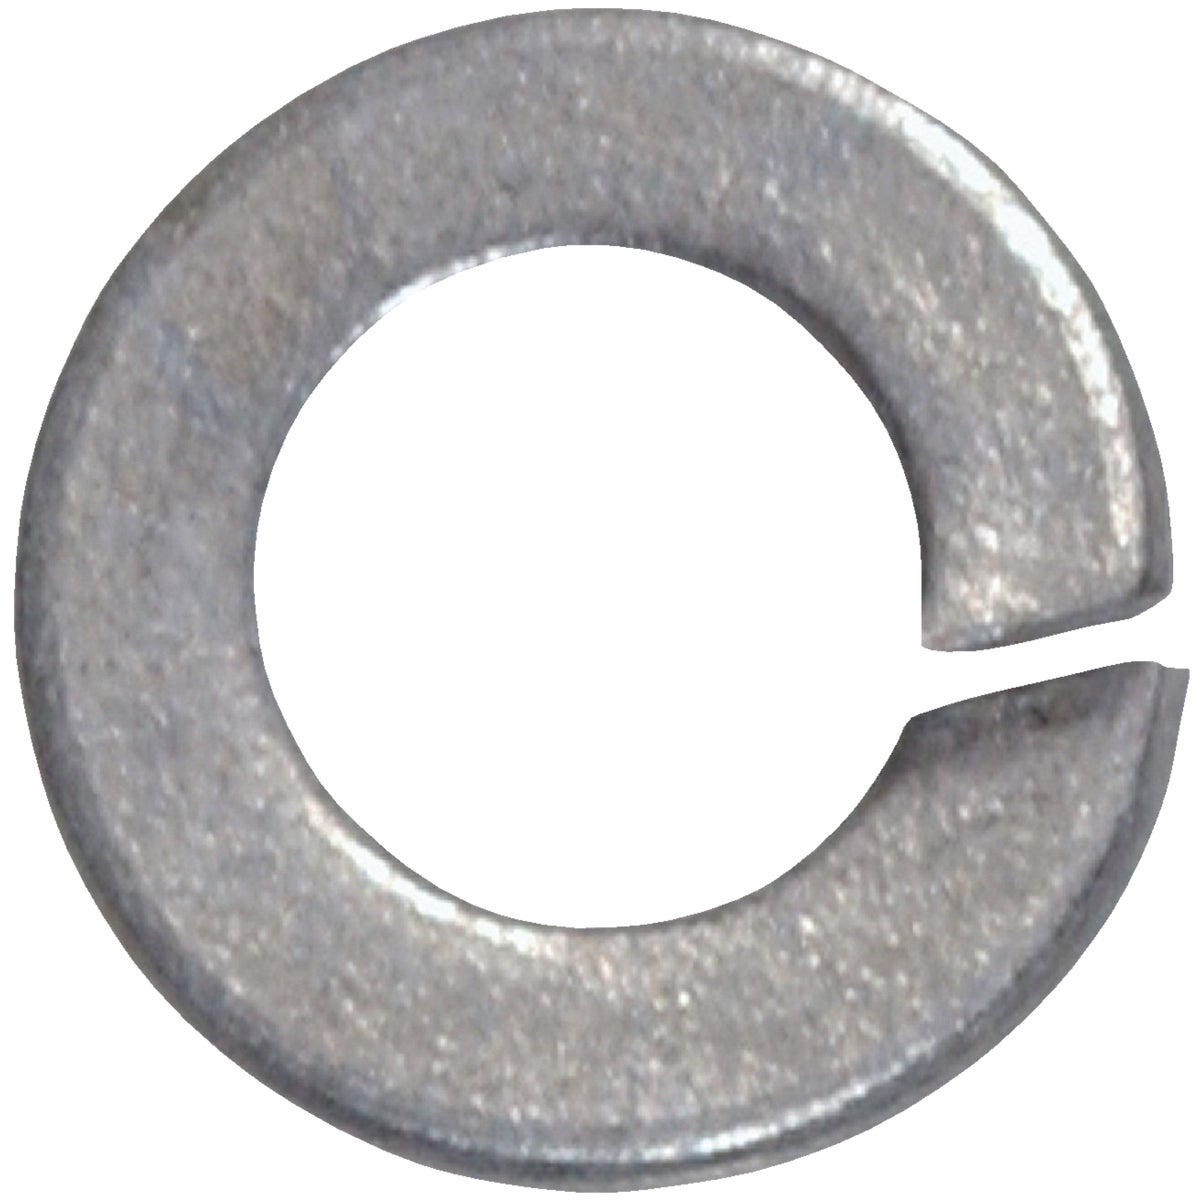 "5/16"" SPLIT LOCK WASHER - 811053 by Hillman Fastener"